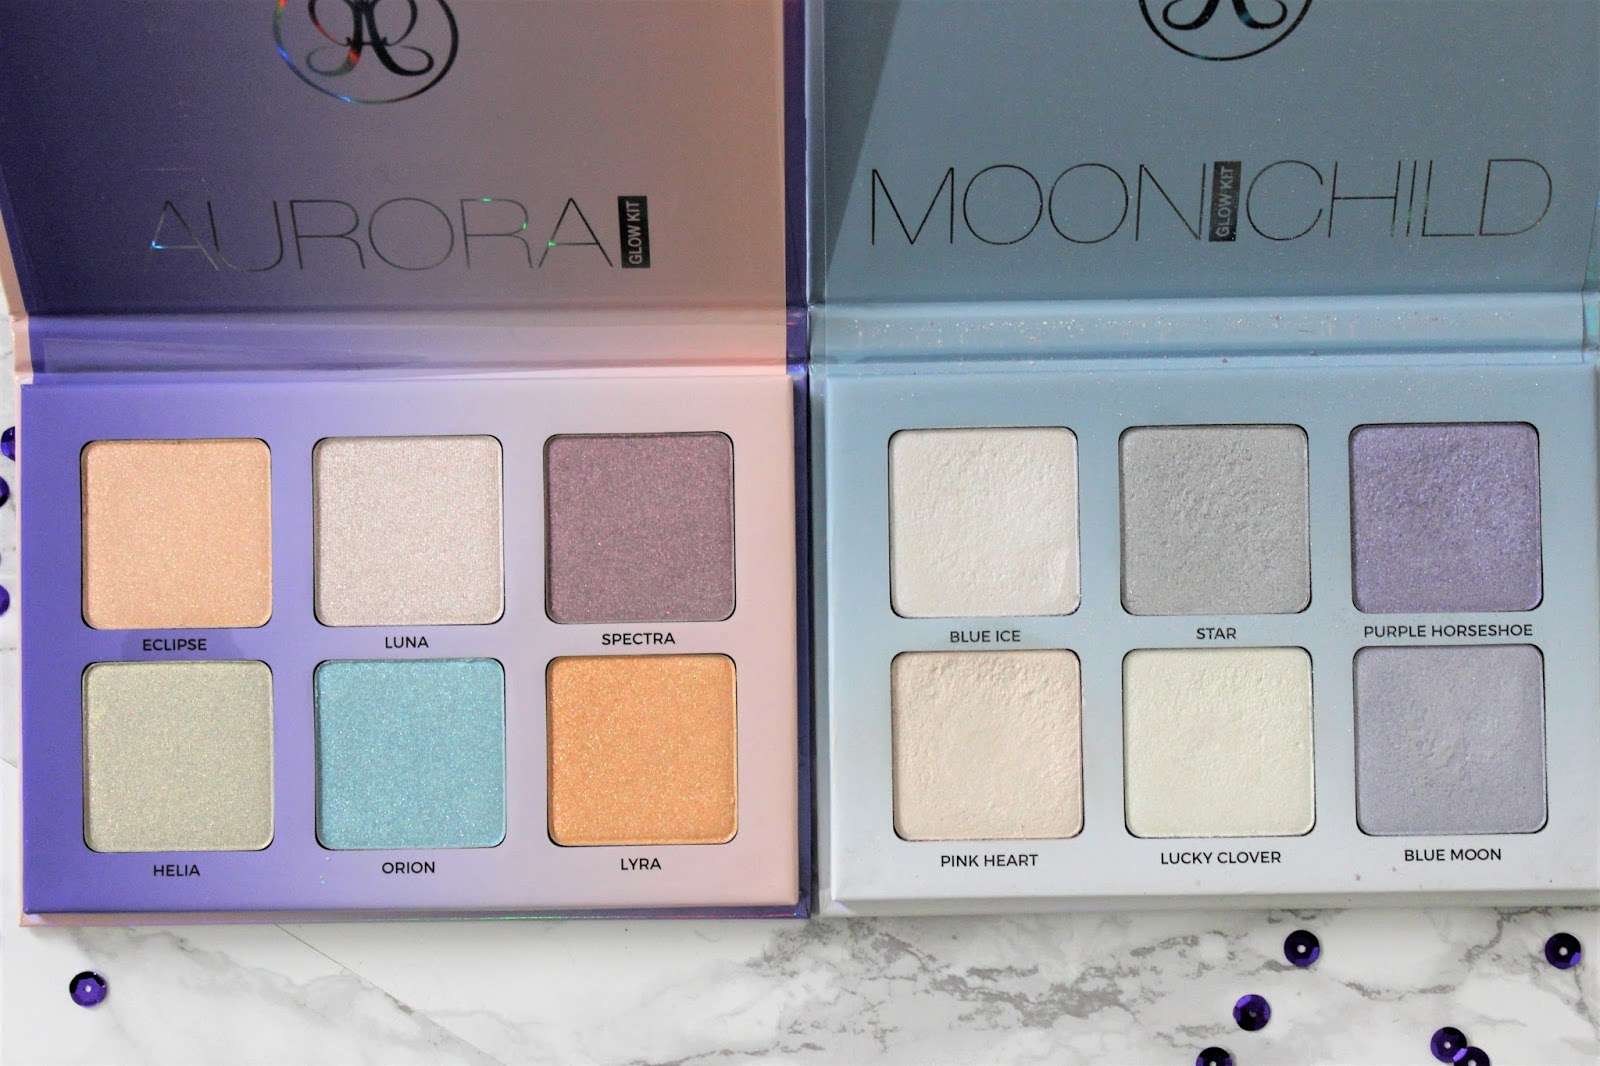 Anastasia Aurora and Moonchild Comparison